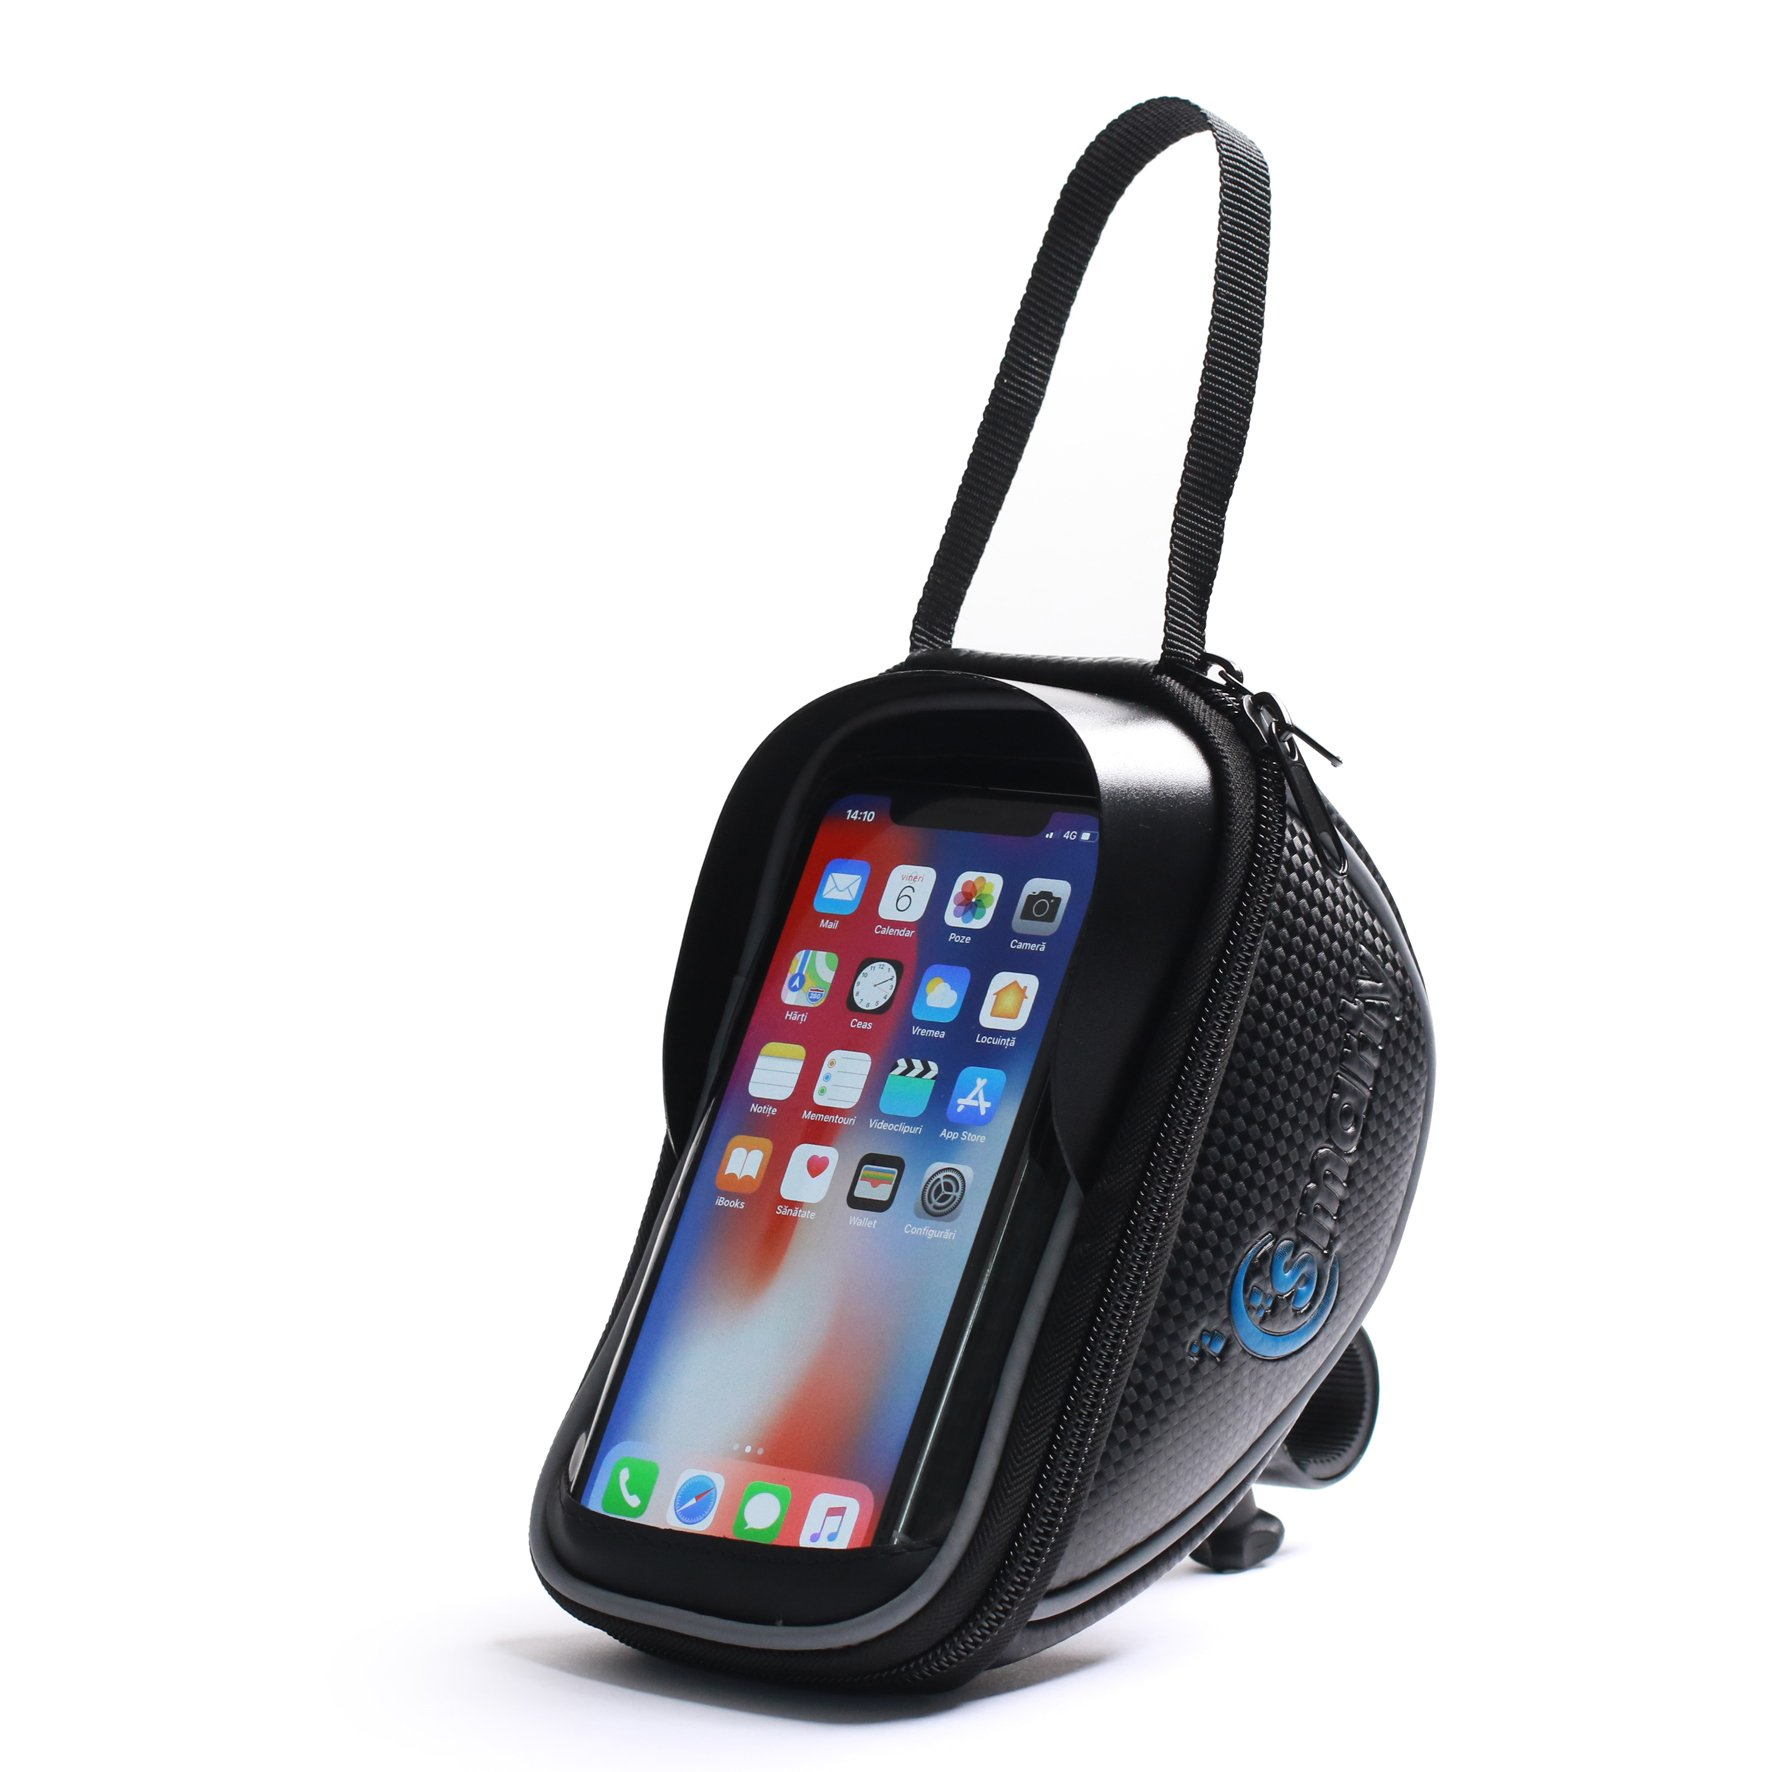 Bike Phone Bag - waterproof Cell Phone Case - Easy Release and Take Away Fastening System - All Types of Bicycle Handlebars - Touch Screen Sensitive - Pouch for all Mobiles Below 6.0 Inch